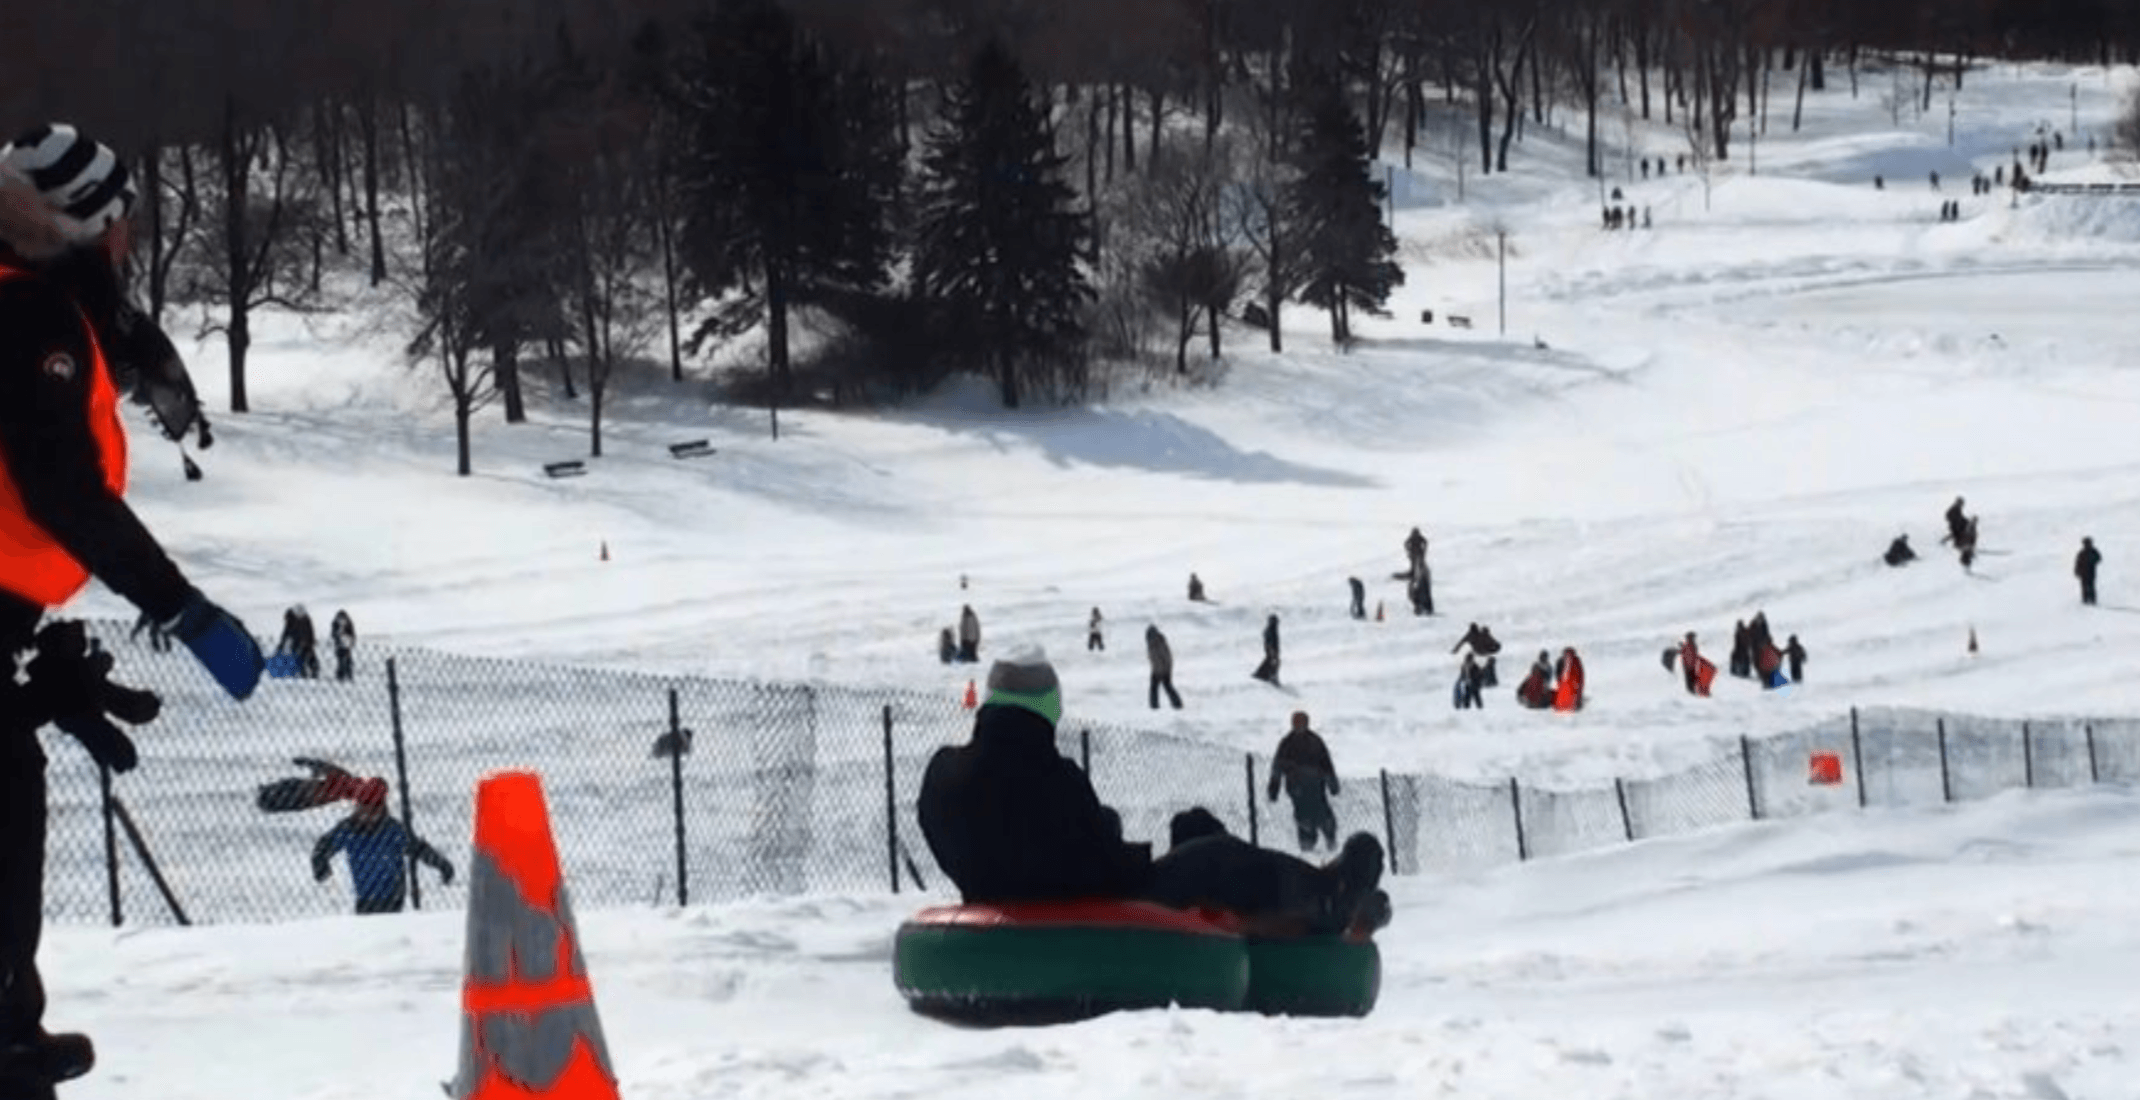 It's so warm in Montreal that you can't go snow tubing on Mount Royal right now